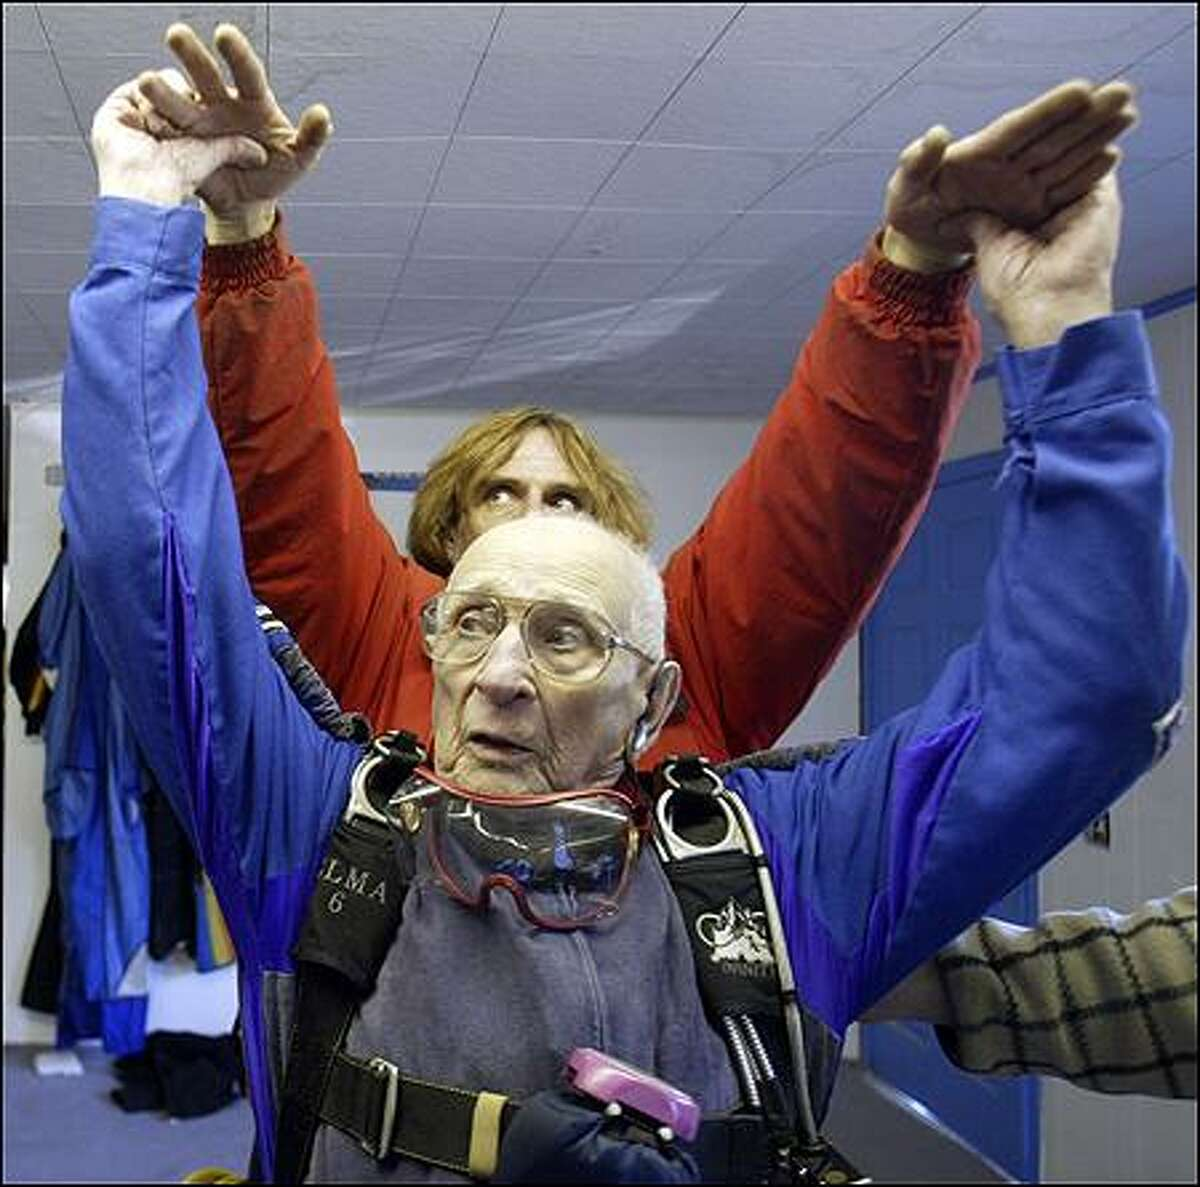 At 96, Milburn Hart made history Friday -- though not without a price -- when he jumped from a plane in Bremerton, making his way into the Guinness World Records as the oldest person to skydive solo. In this photo, Hart practices reaching for his steering lines before his jump, which went well, except for the fact that he broke his arm when he missed his landing target, landing in brush. He said he expects to jump again -- after he heals.